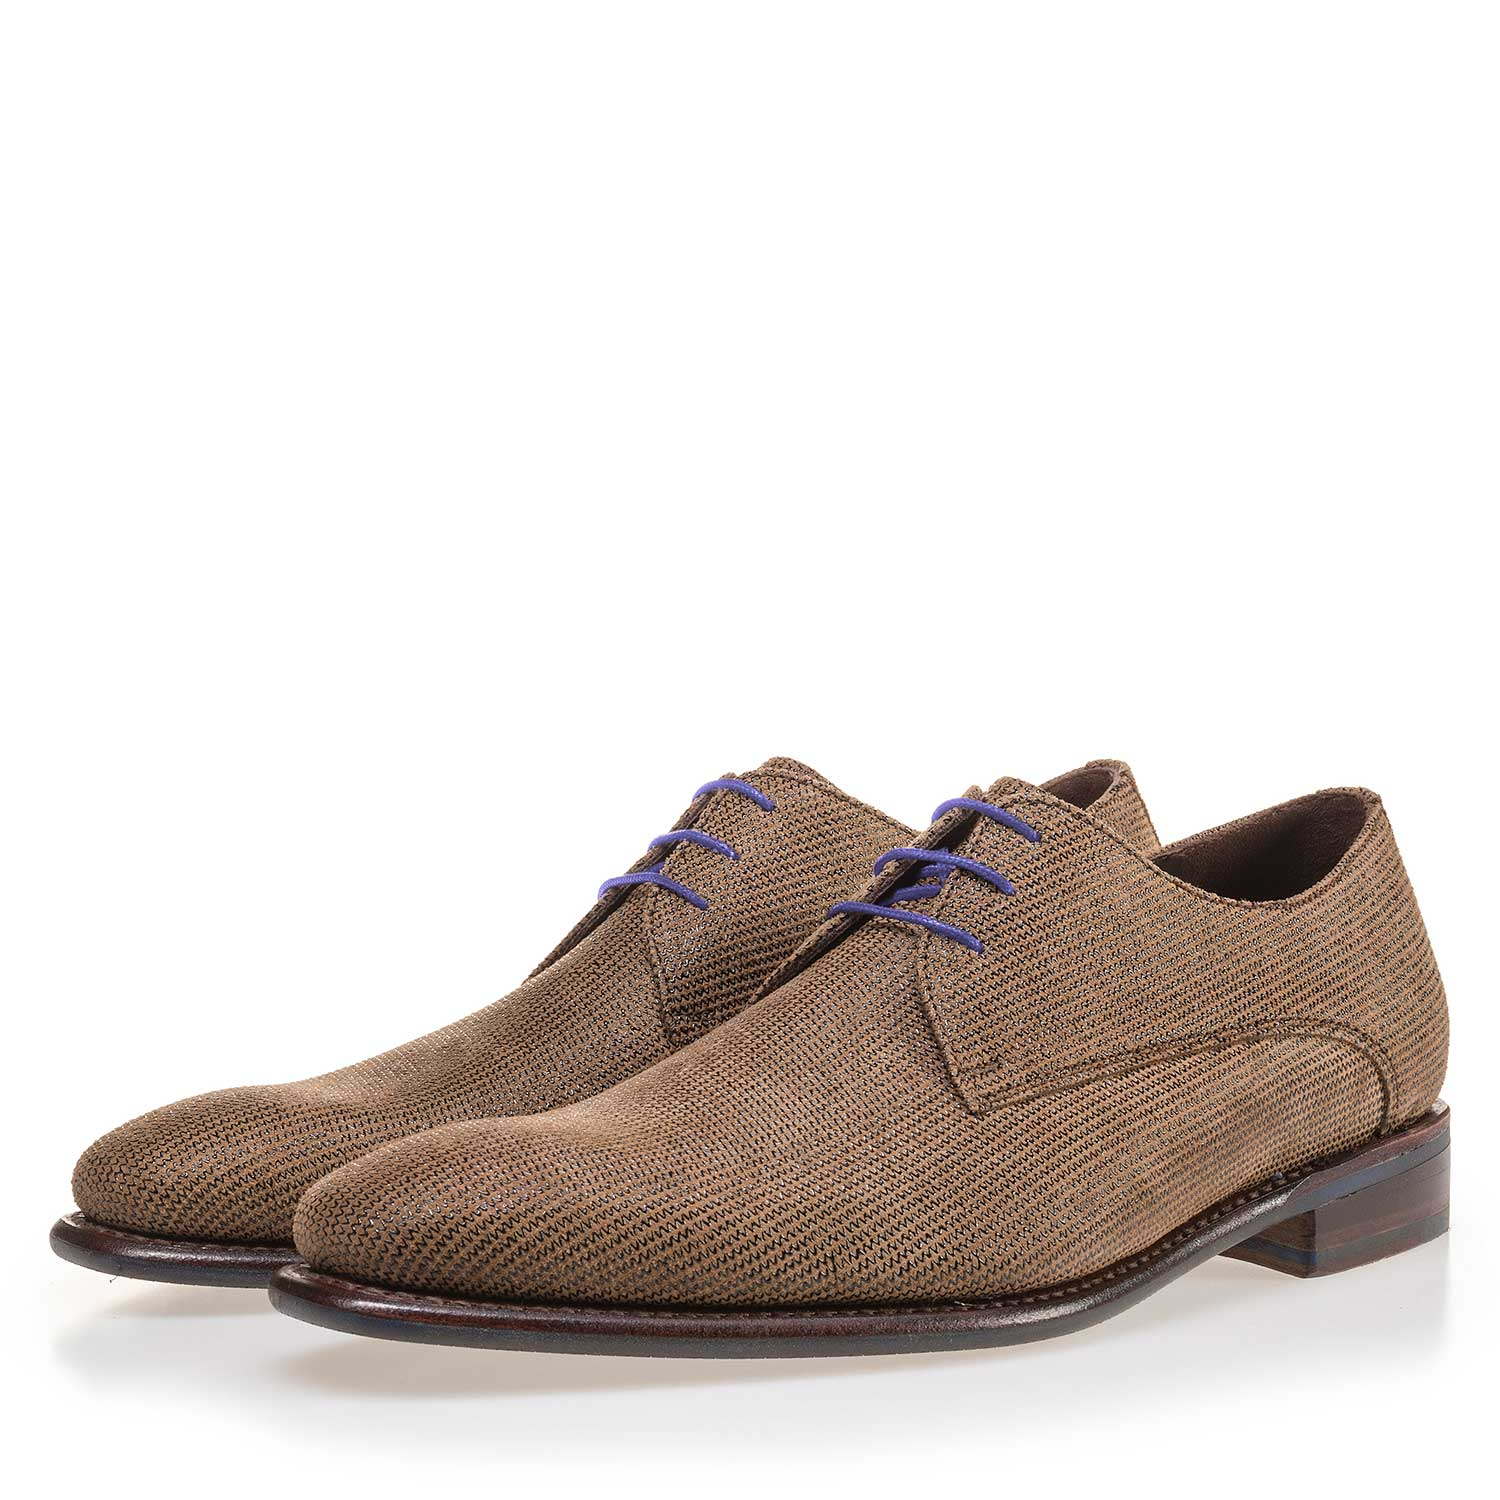 14859/00 - Brown lace shoe made of suede leather